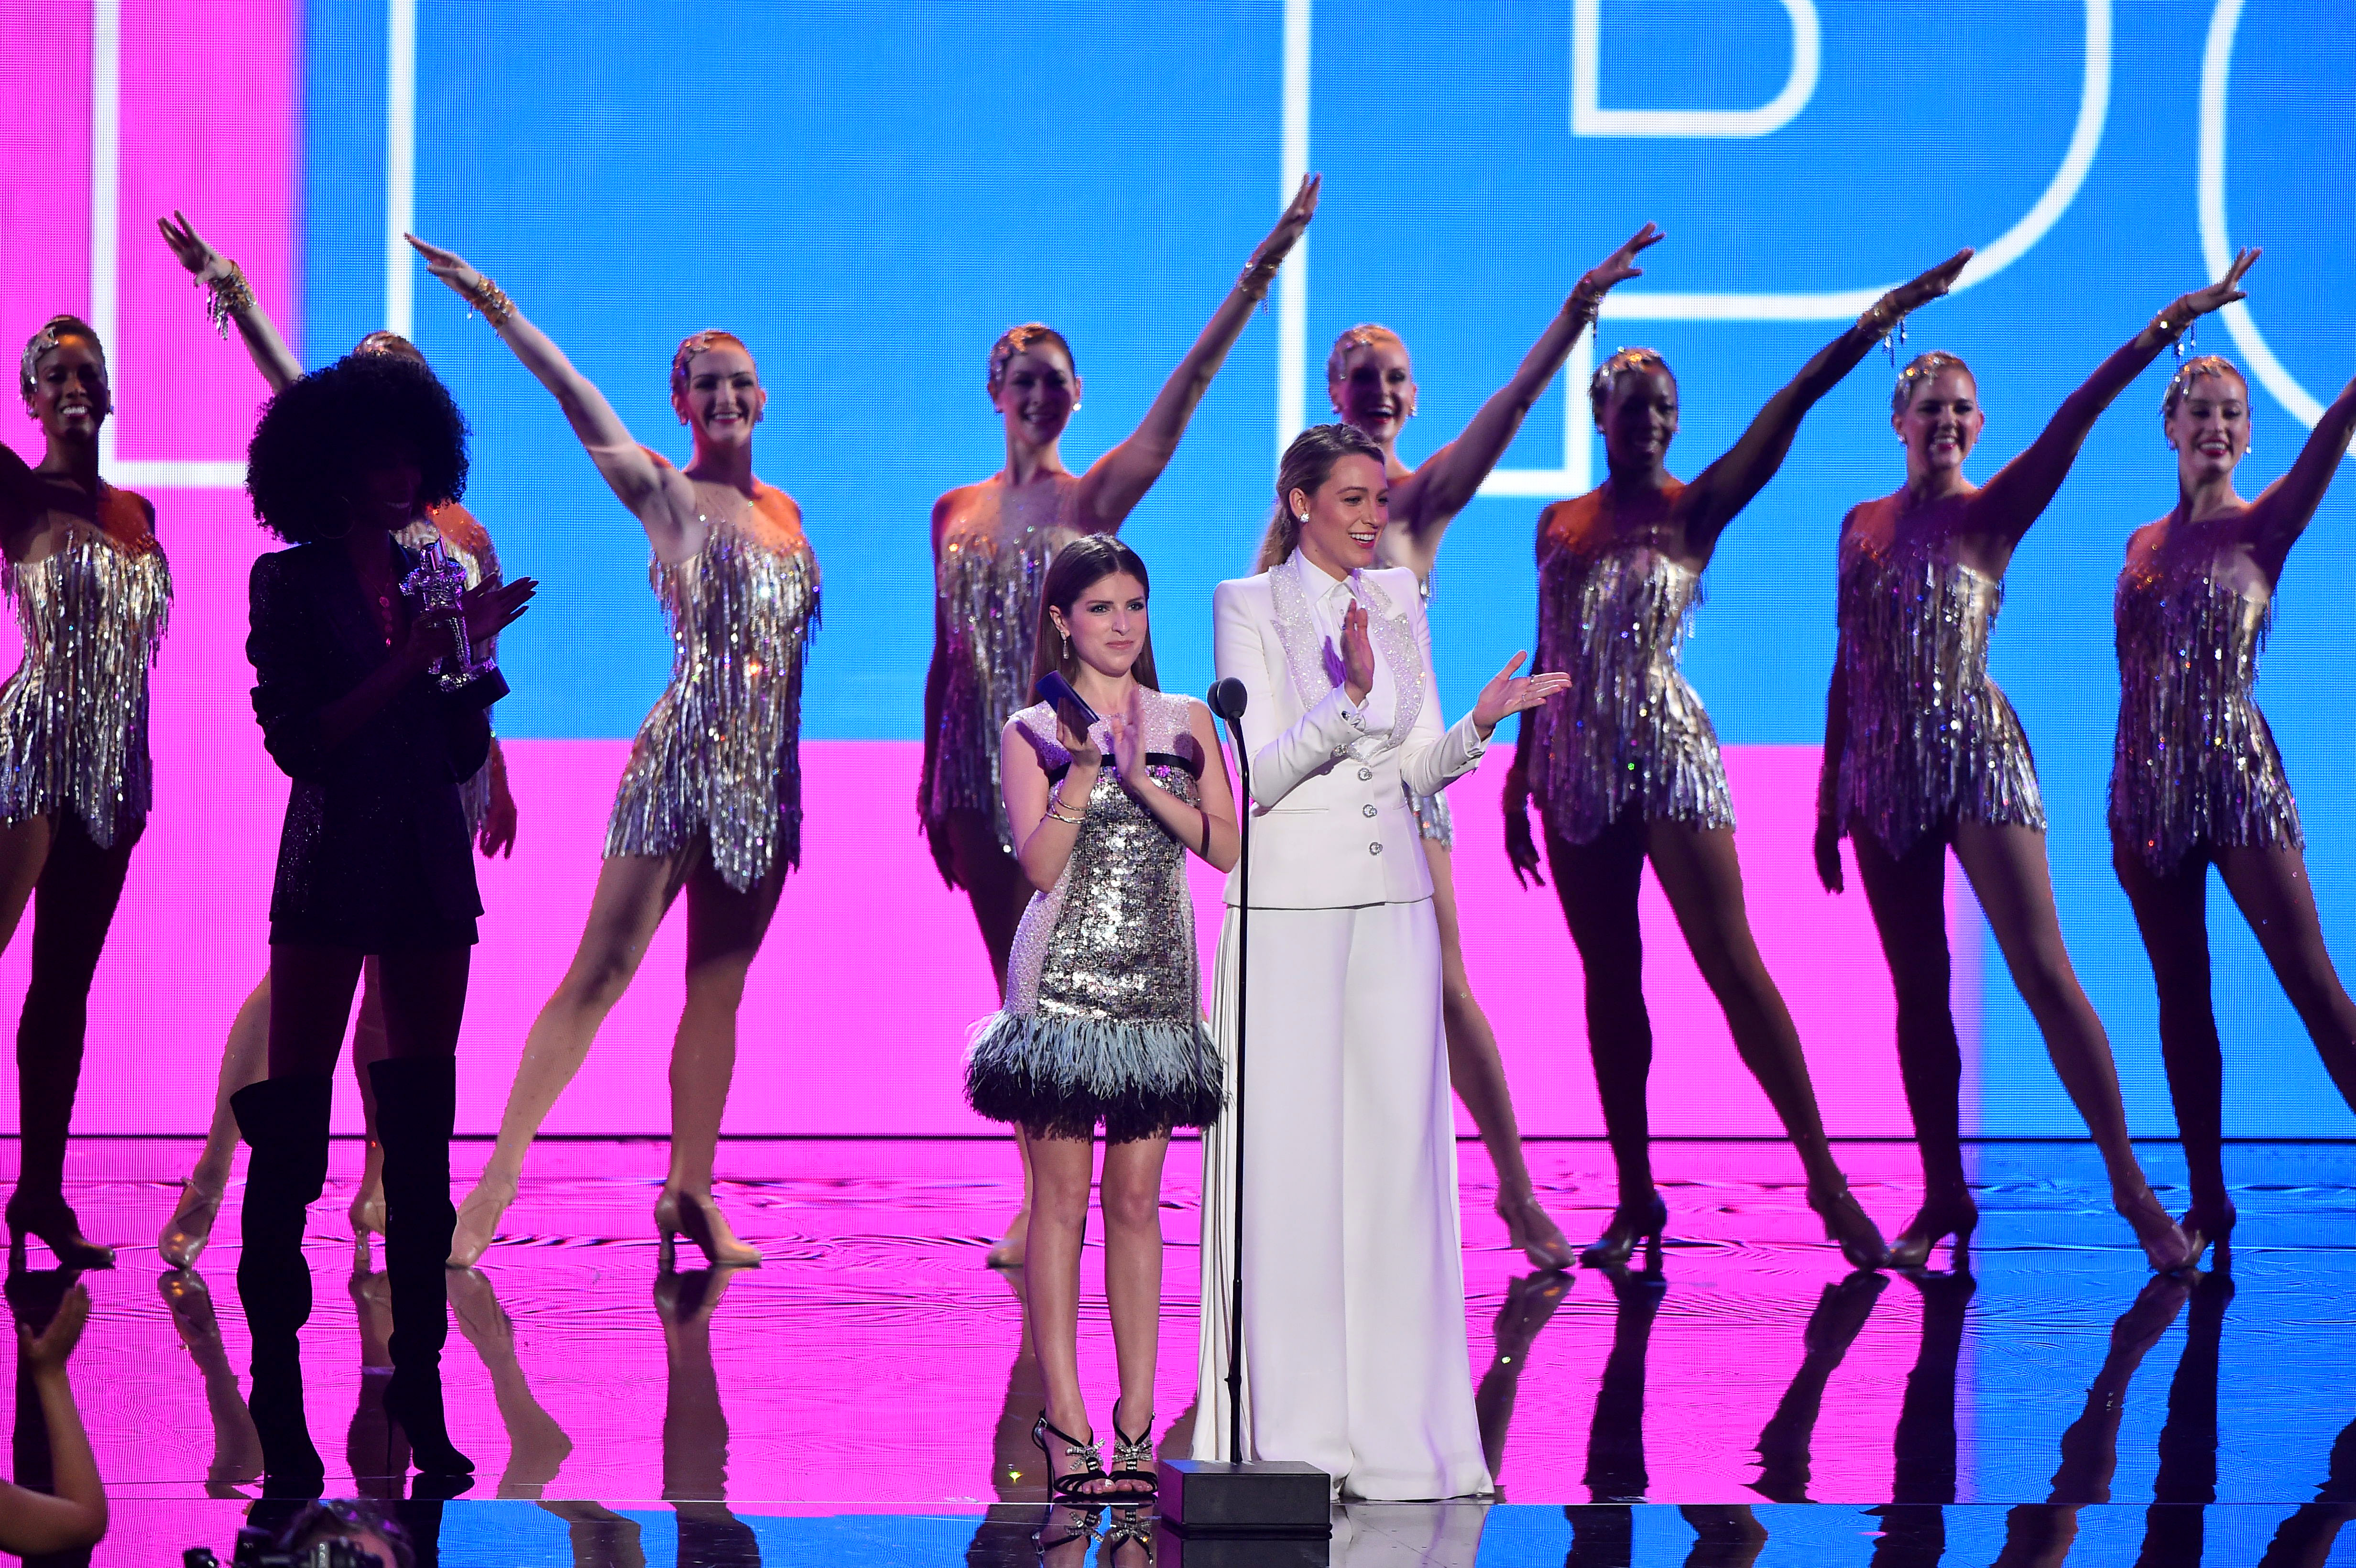 NEW YORK, NY - AUGUST 20:  Anna Kendrick and Blake Lively speak onstage during the 2018 MTV Video Music Awards at Radio City Music Hall on August 20, 2018 in New York City.  (Photo by Theo Wargo/Getty Images)